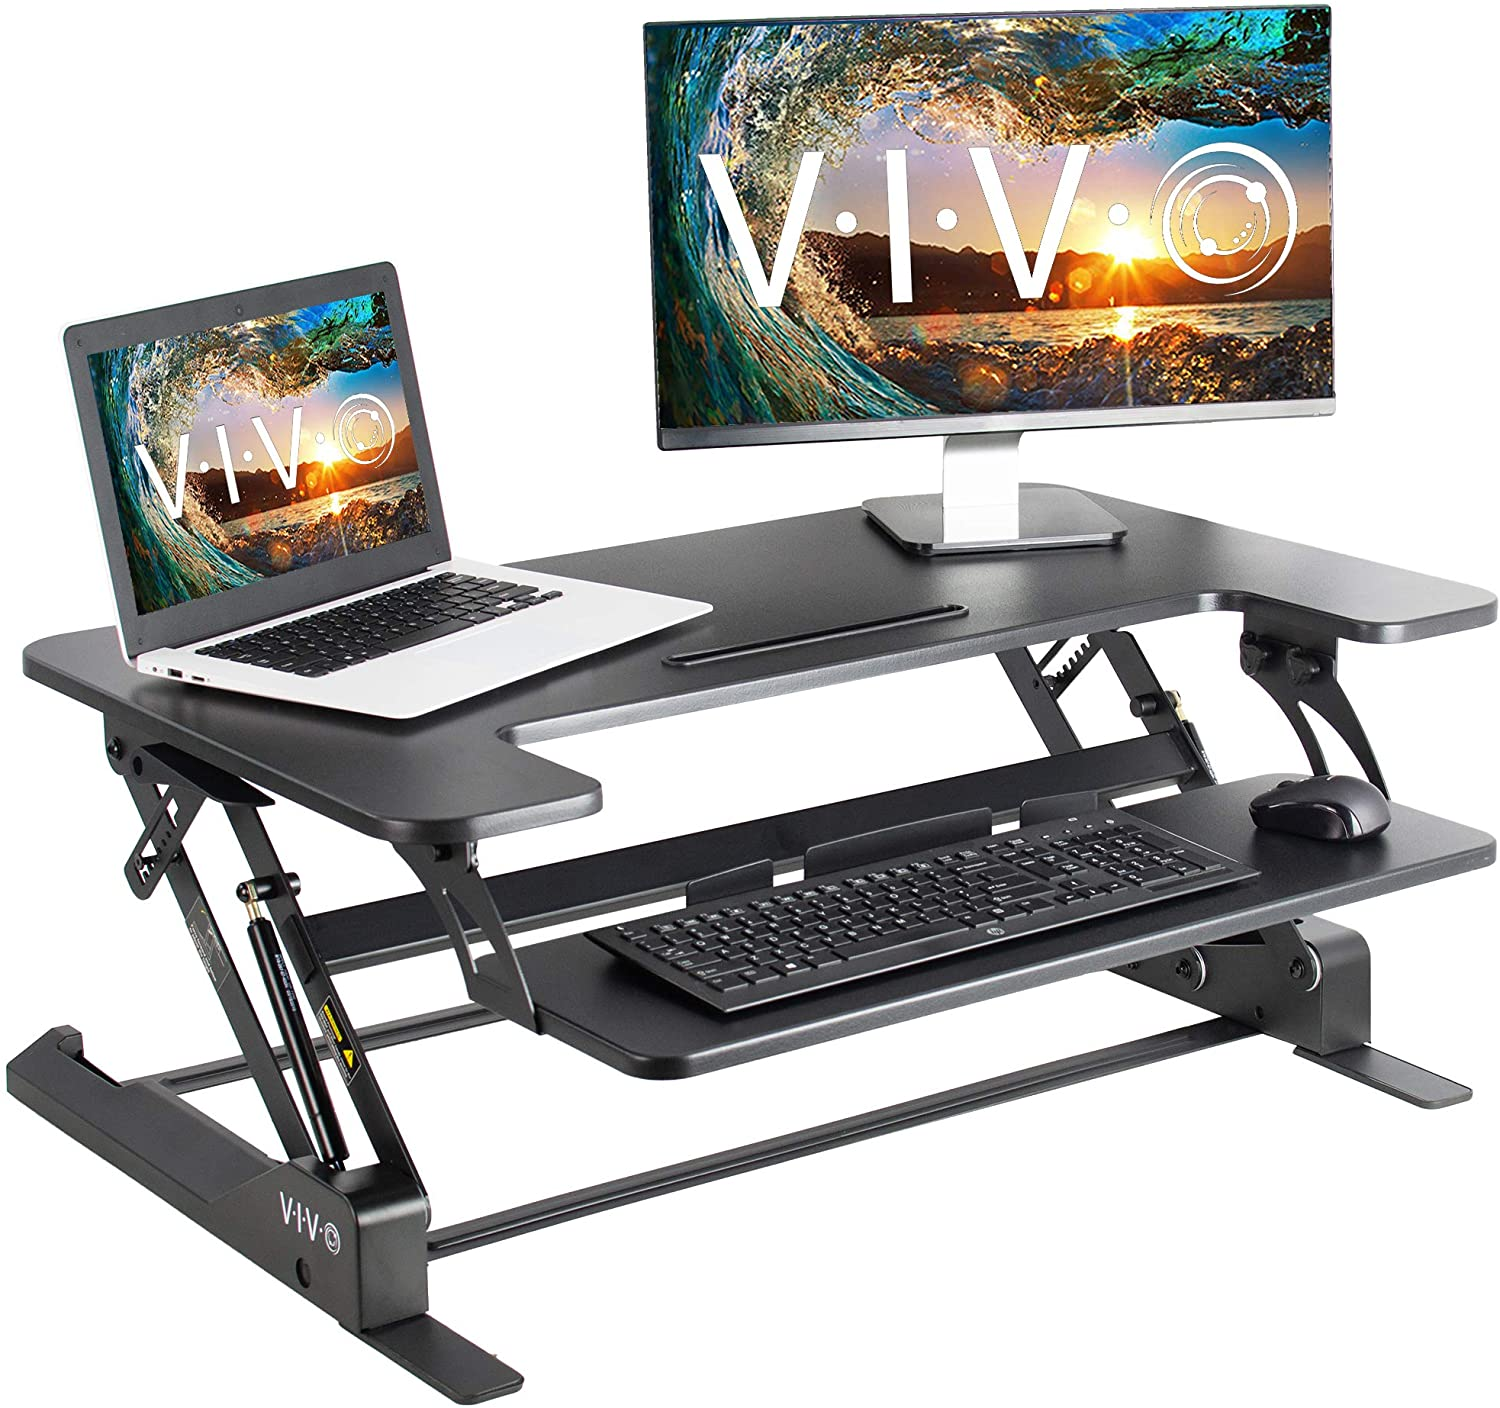 Vivo height adjustable standing desk sit to stand gas spring riser converter